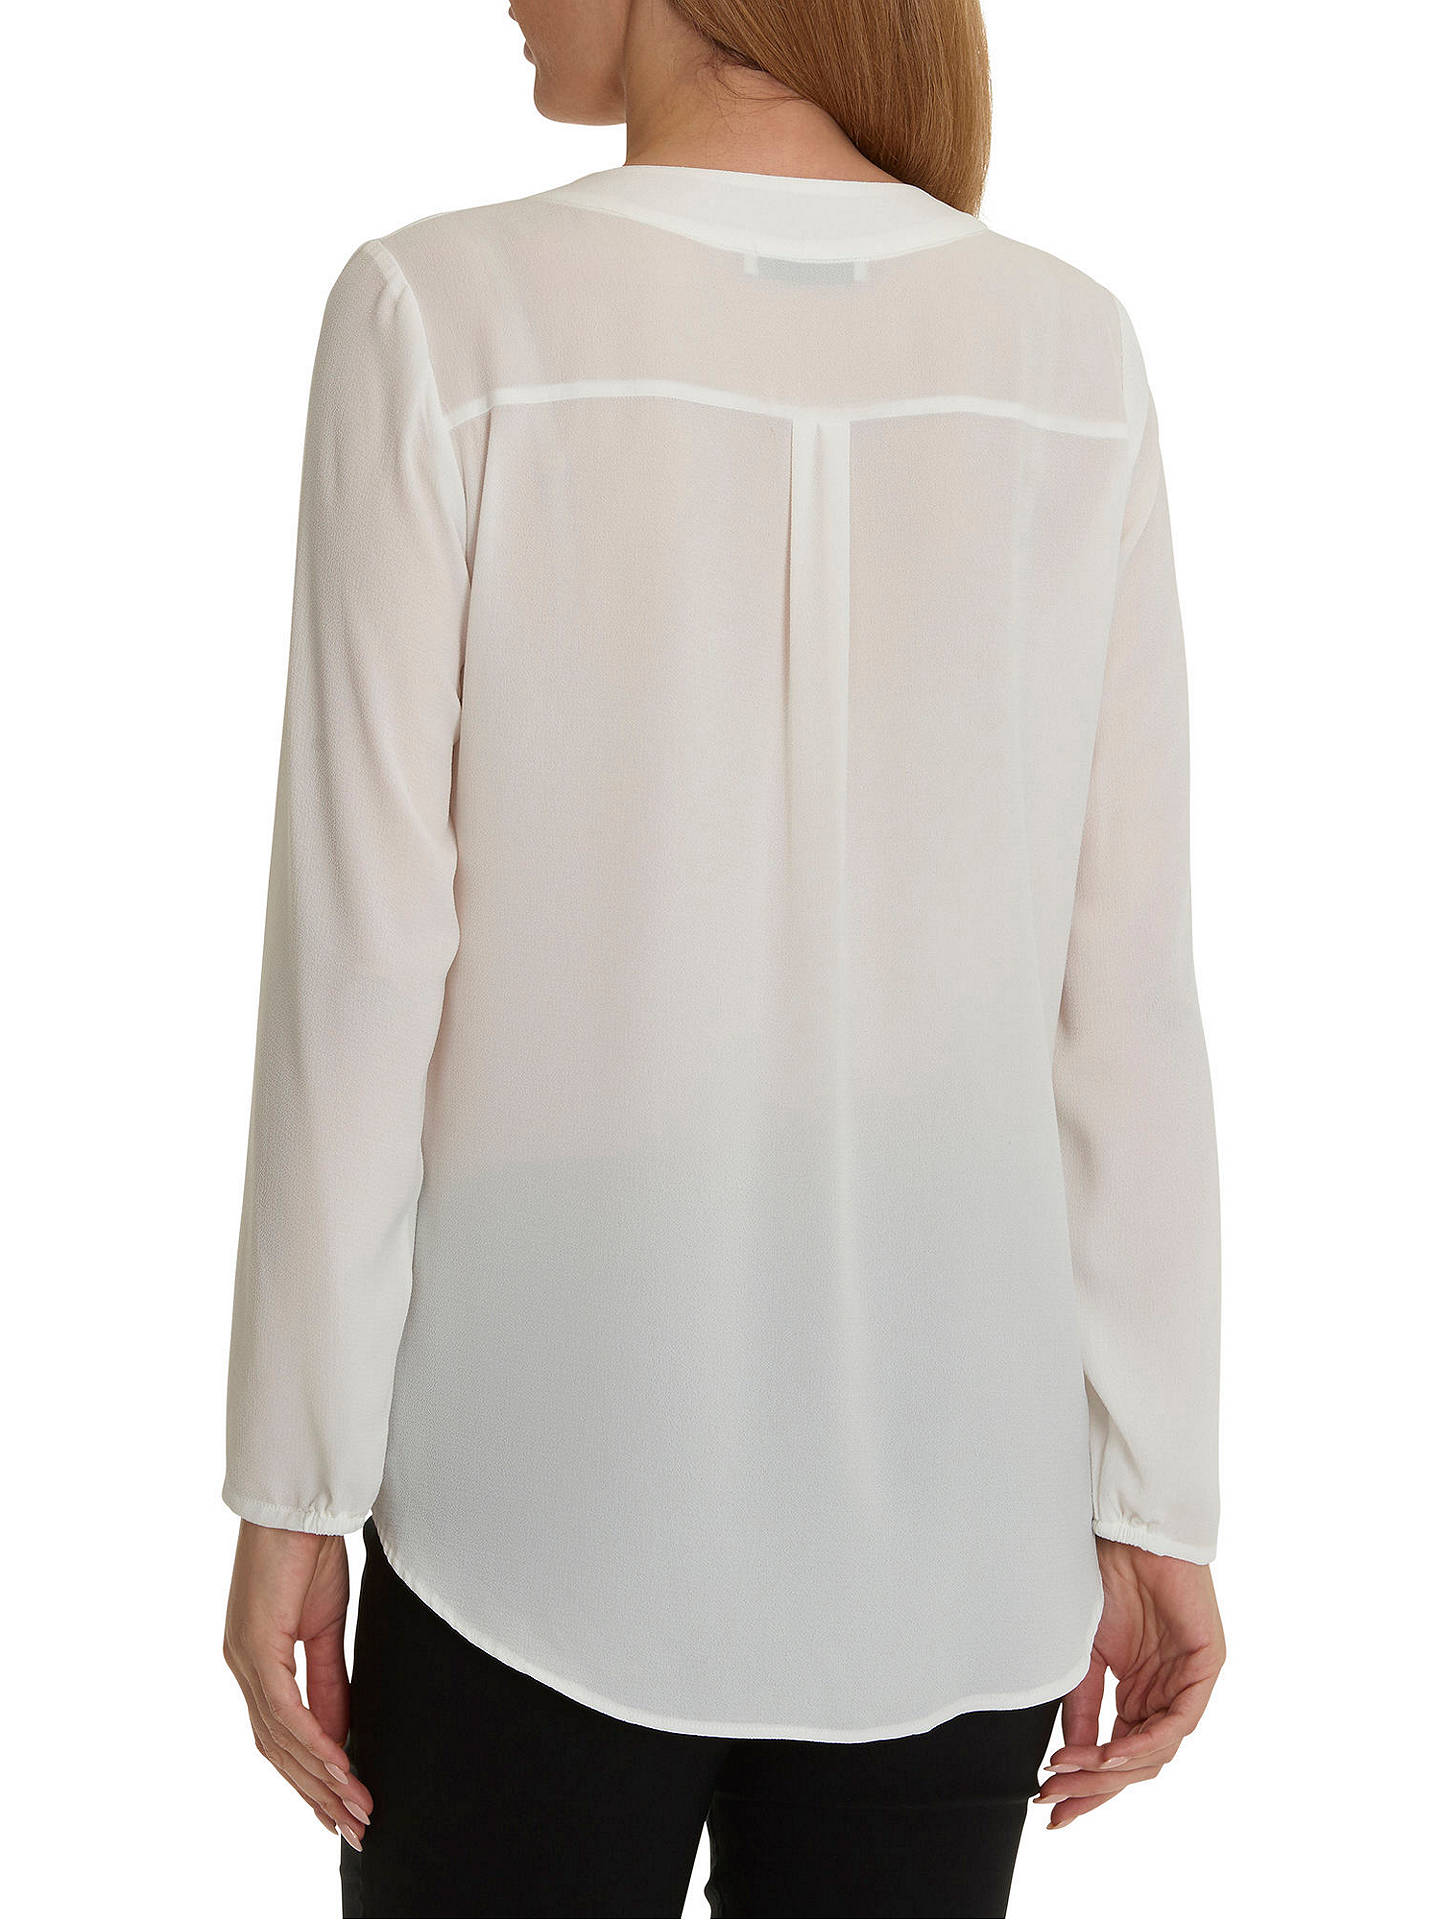 Buy Betty Barclay V-Neck Crepe Blouse, Off White, 10 Online at johnlewis.com